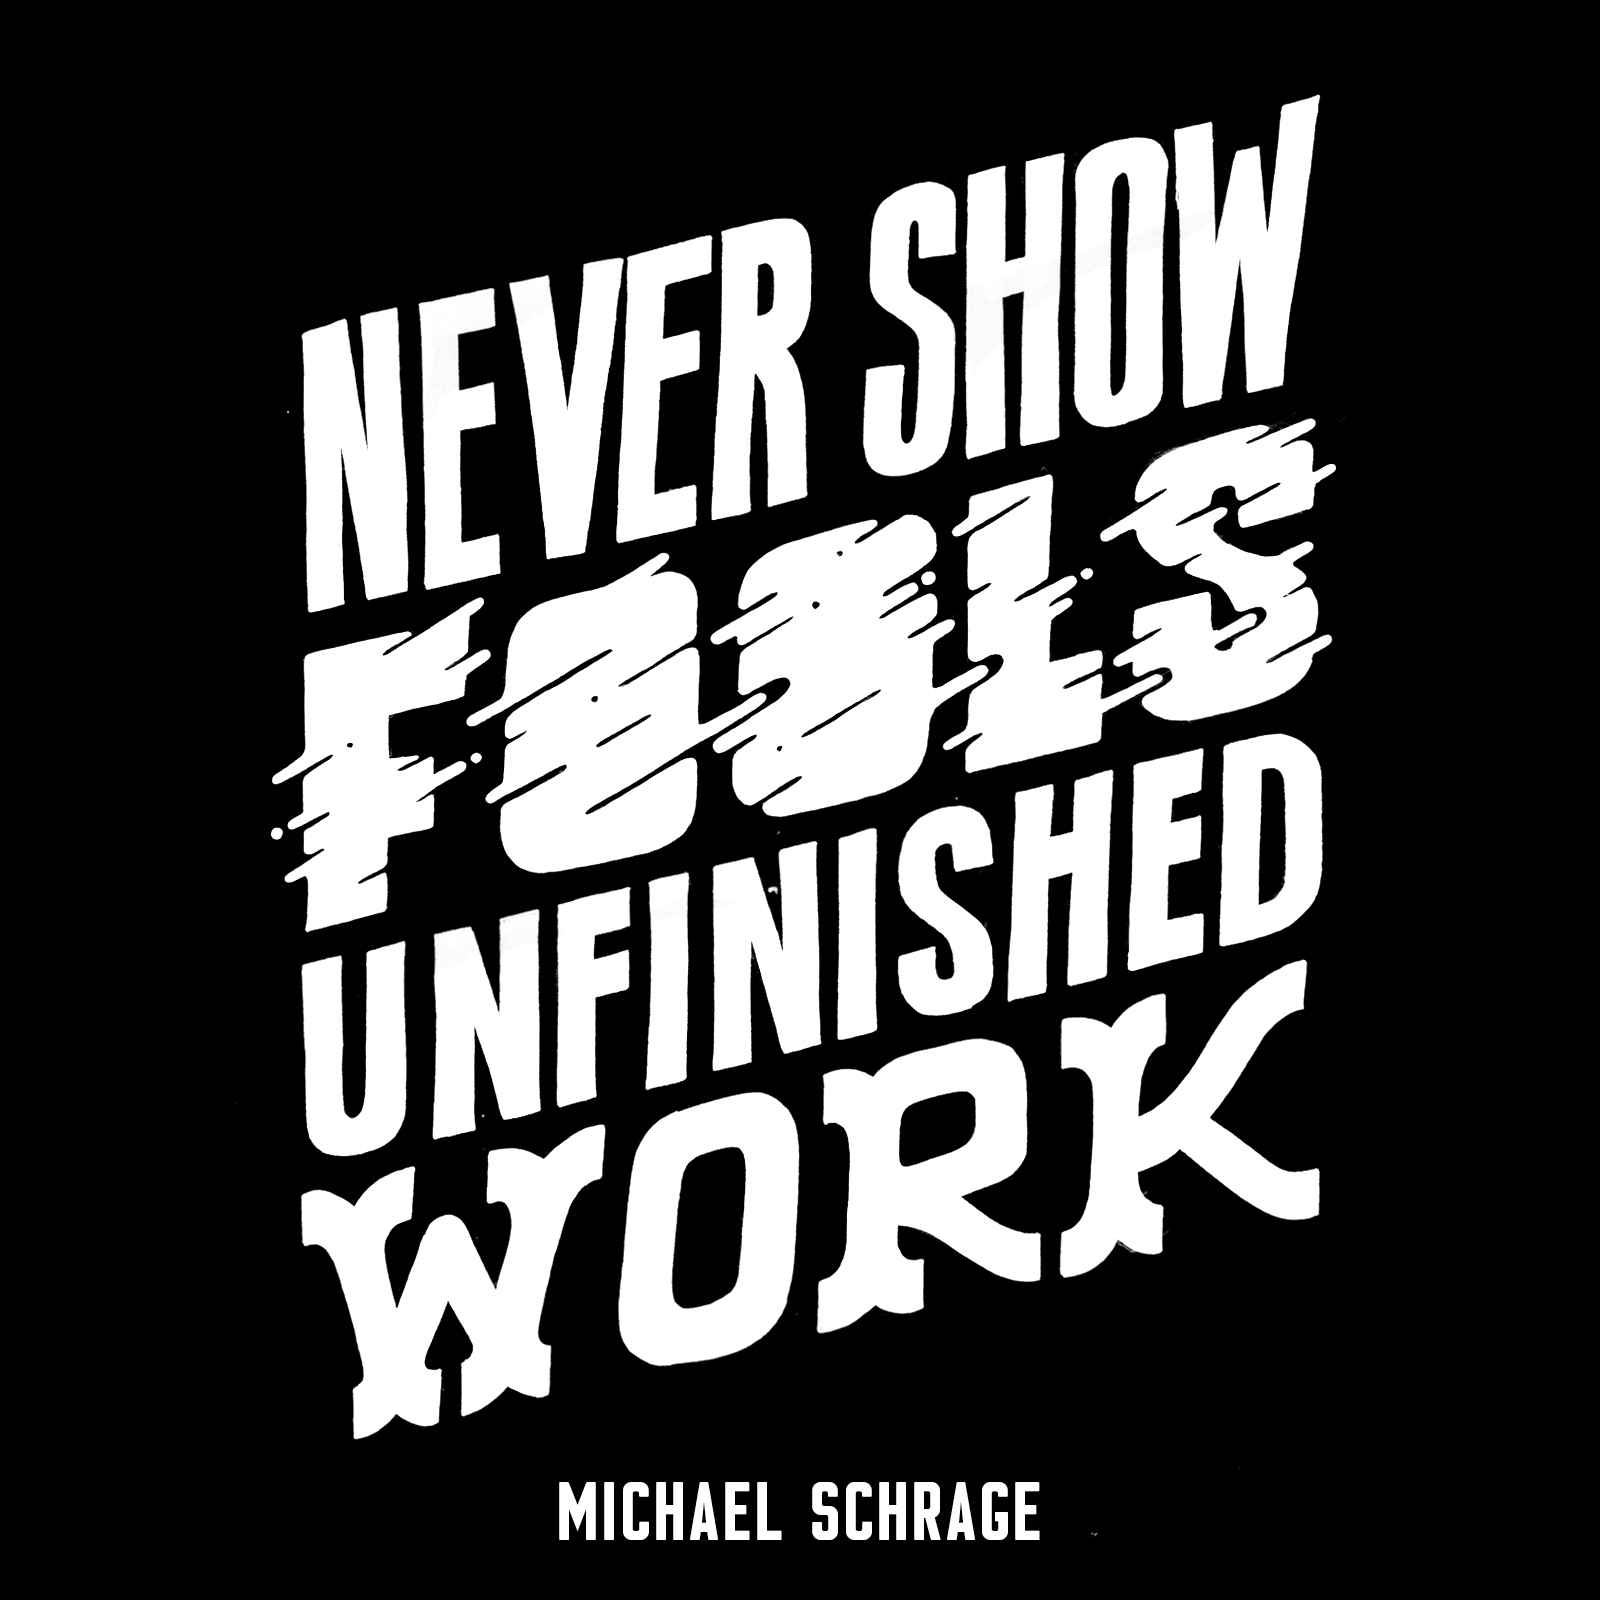 Never show fools unfinished work. - Unfinished Work PNG